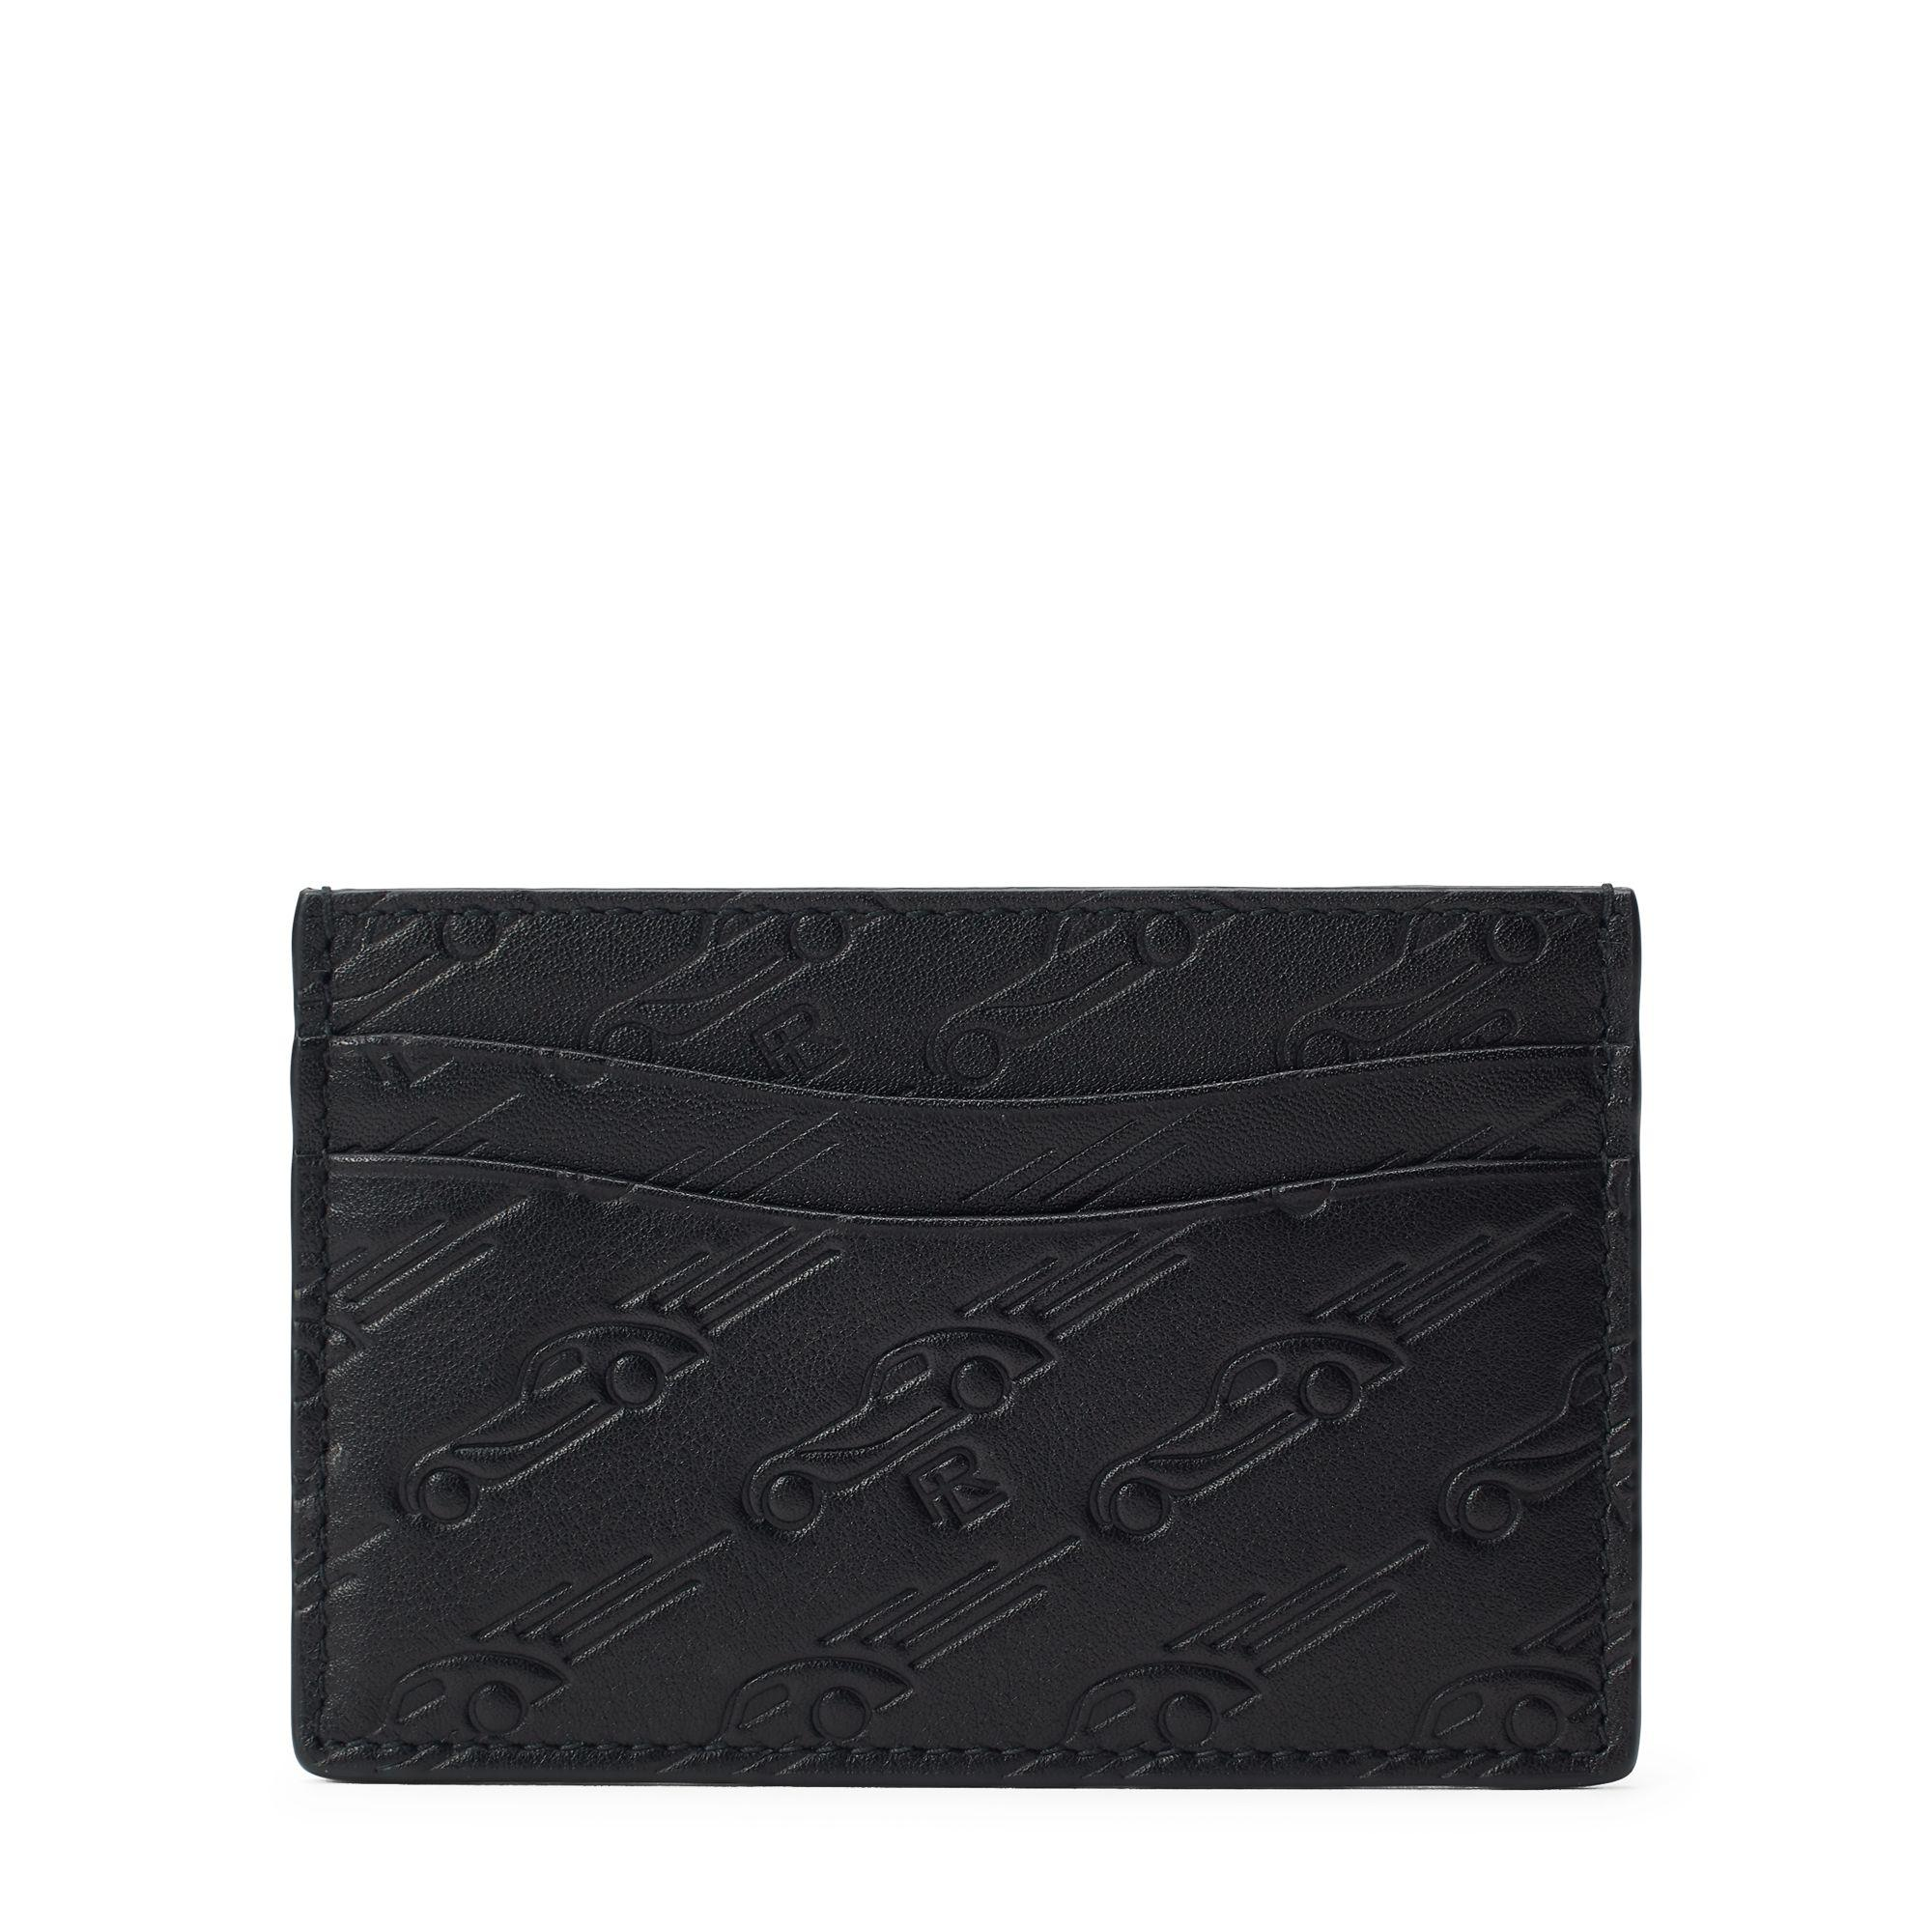 Lyst - Ralph Lauren Printed Leather Card Case in Black for Men 7567523b370f6